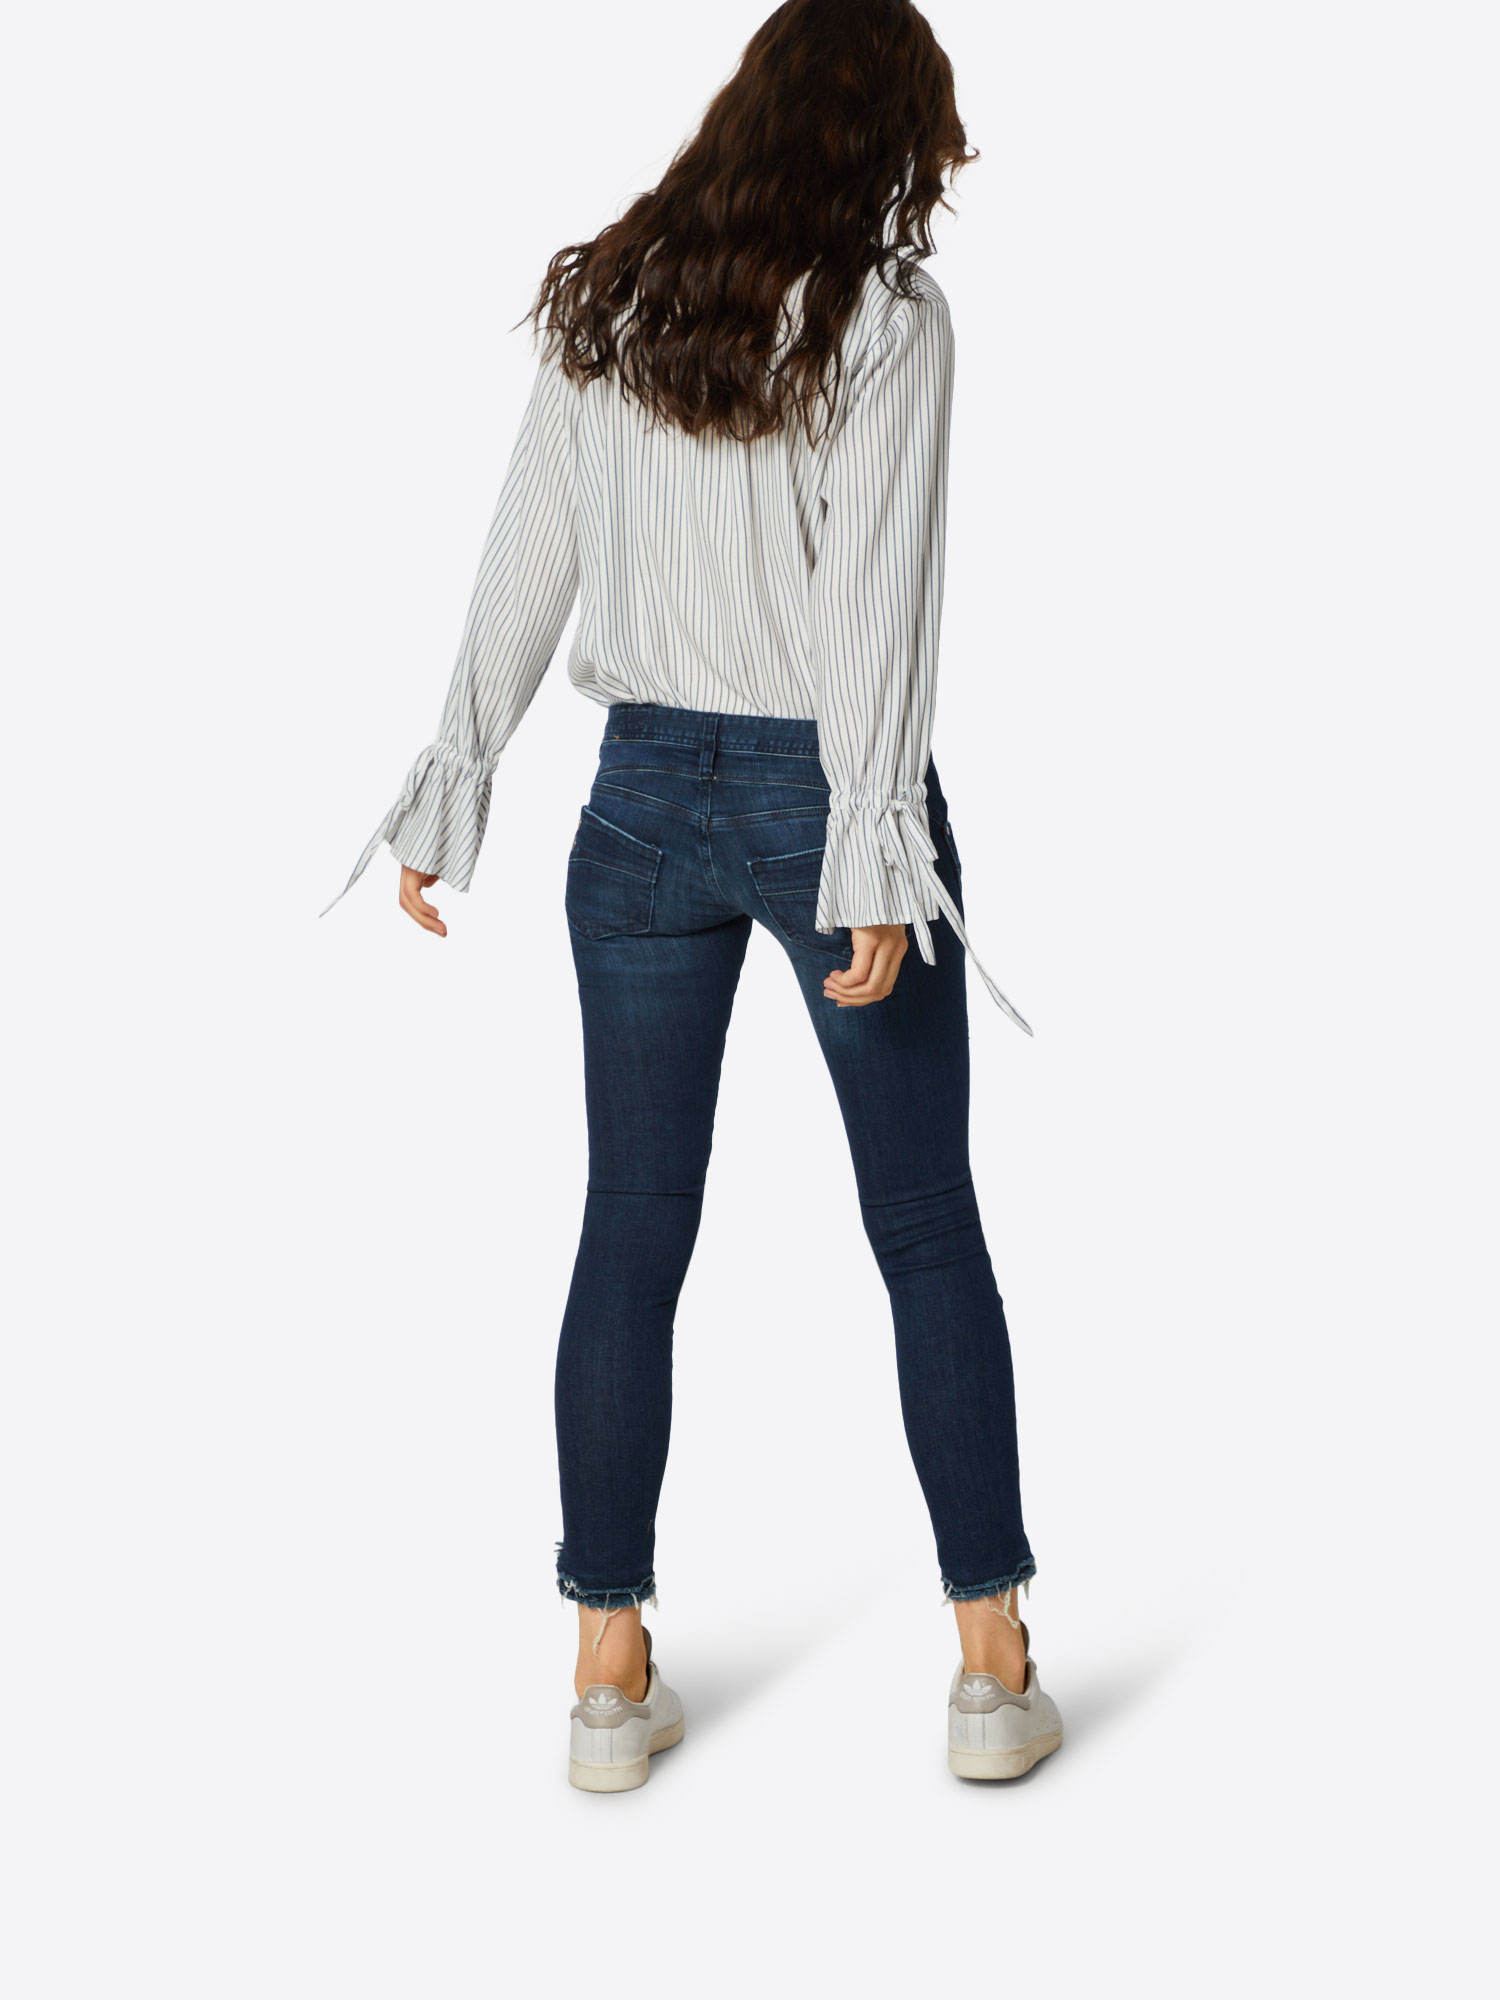 Herrlicher Jeans 'Piper Cropped Powerstretch' in Donkerblauw 61a8r74p